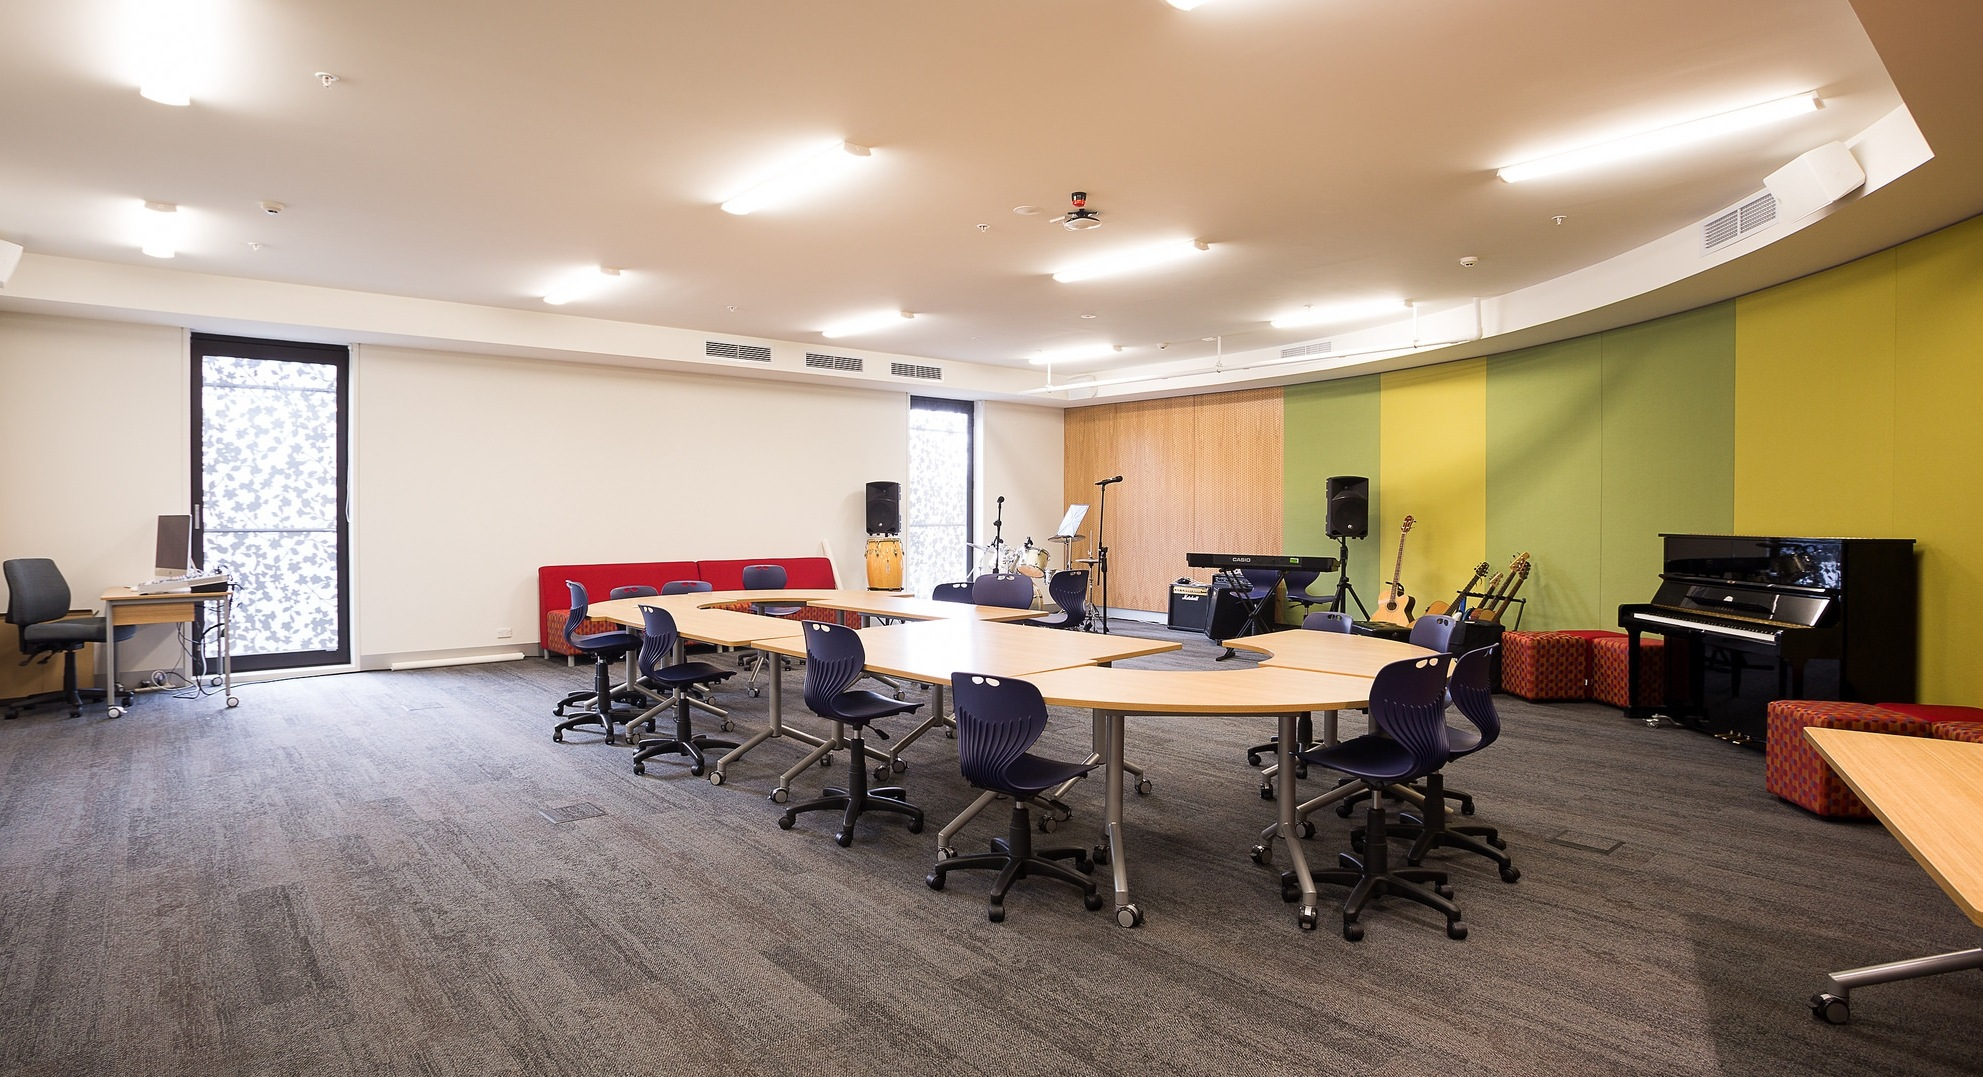 Our music classrooms are housed in the teaching and learning spaces within the purpose built Arts Centre.